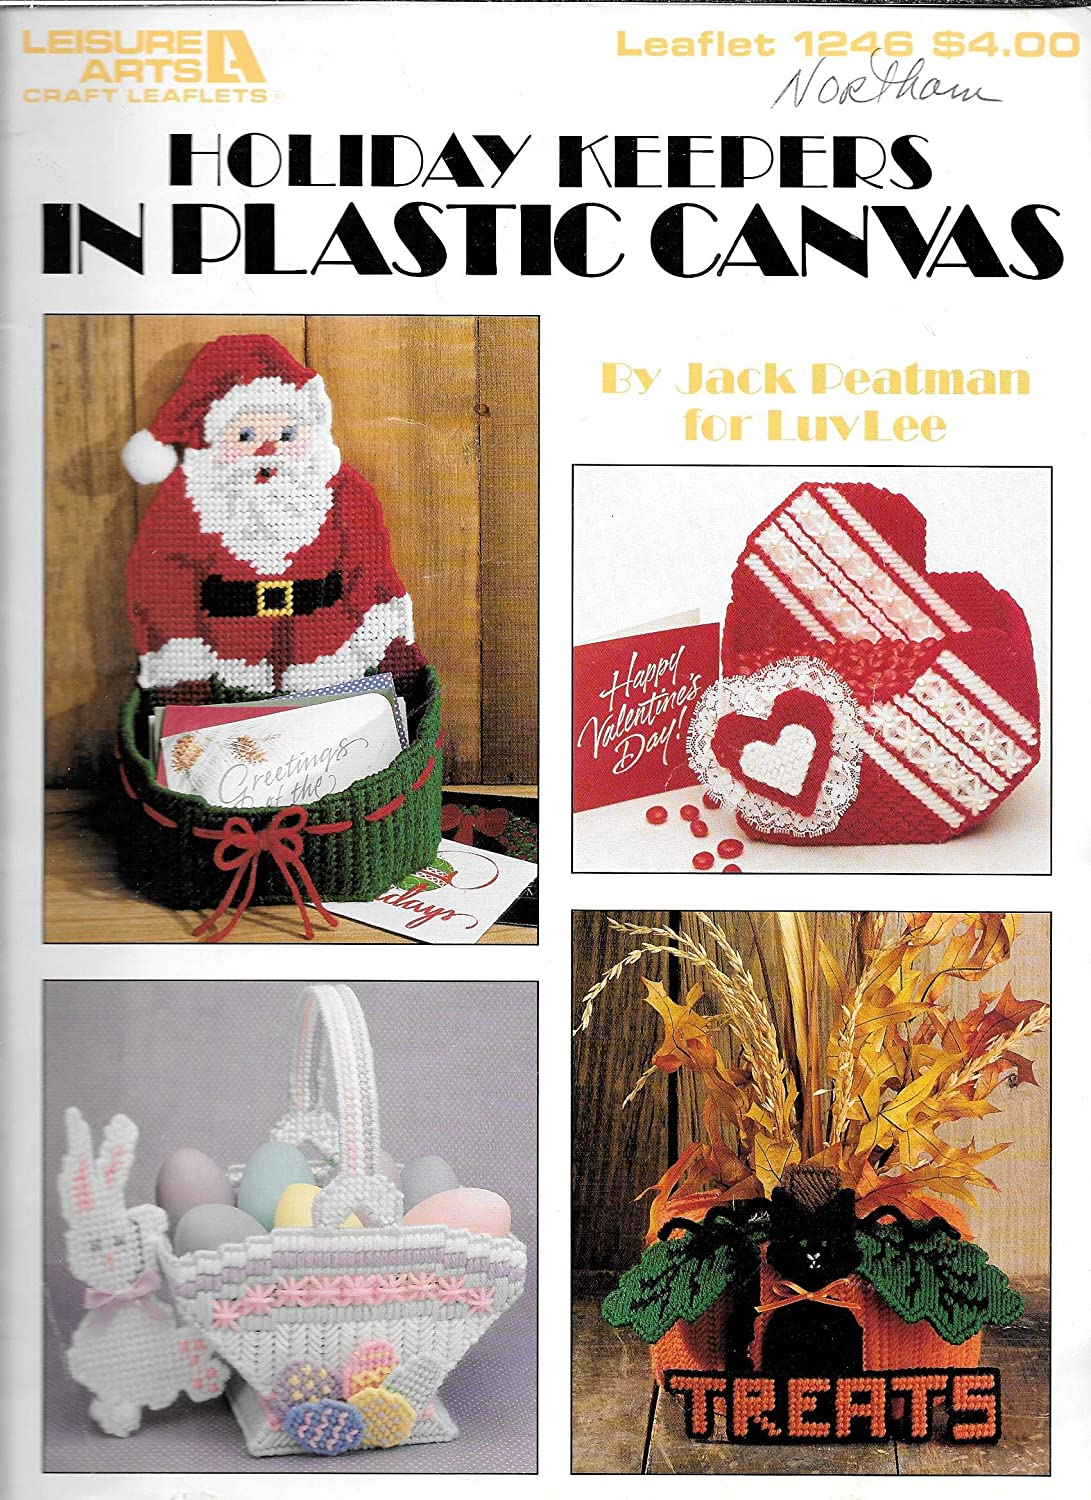 Holiday Keepers in Plastic Canvas by Jack Peatman (Leaflet 1246)